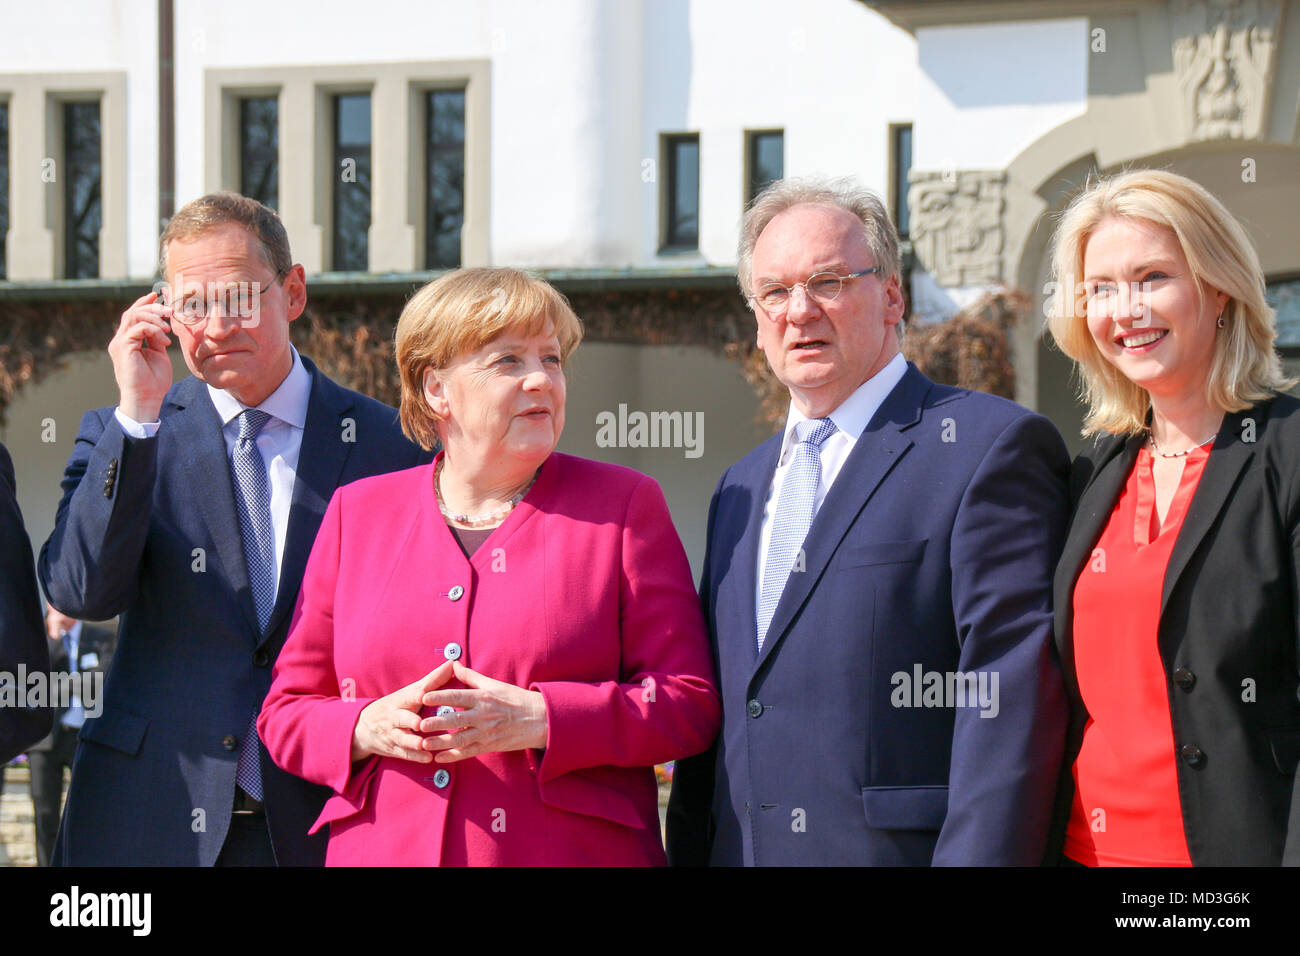 Bad Schmiedeberg, Germany - April 18, 2018: German Chancellor Angela Merkel has Saxony-Anhalt's Prime Minister Reiner Haseloff explain the city of Bad Schmiedeberg to her. The East German prime ministers are meeting in the spa town. Credit: Mattis Kaminer/Alamy Live News - Stock Image